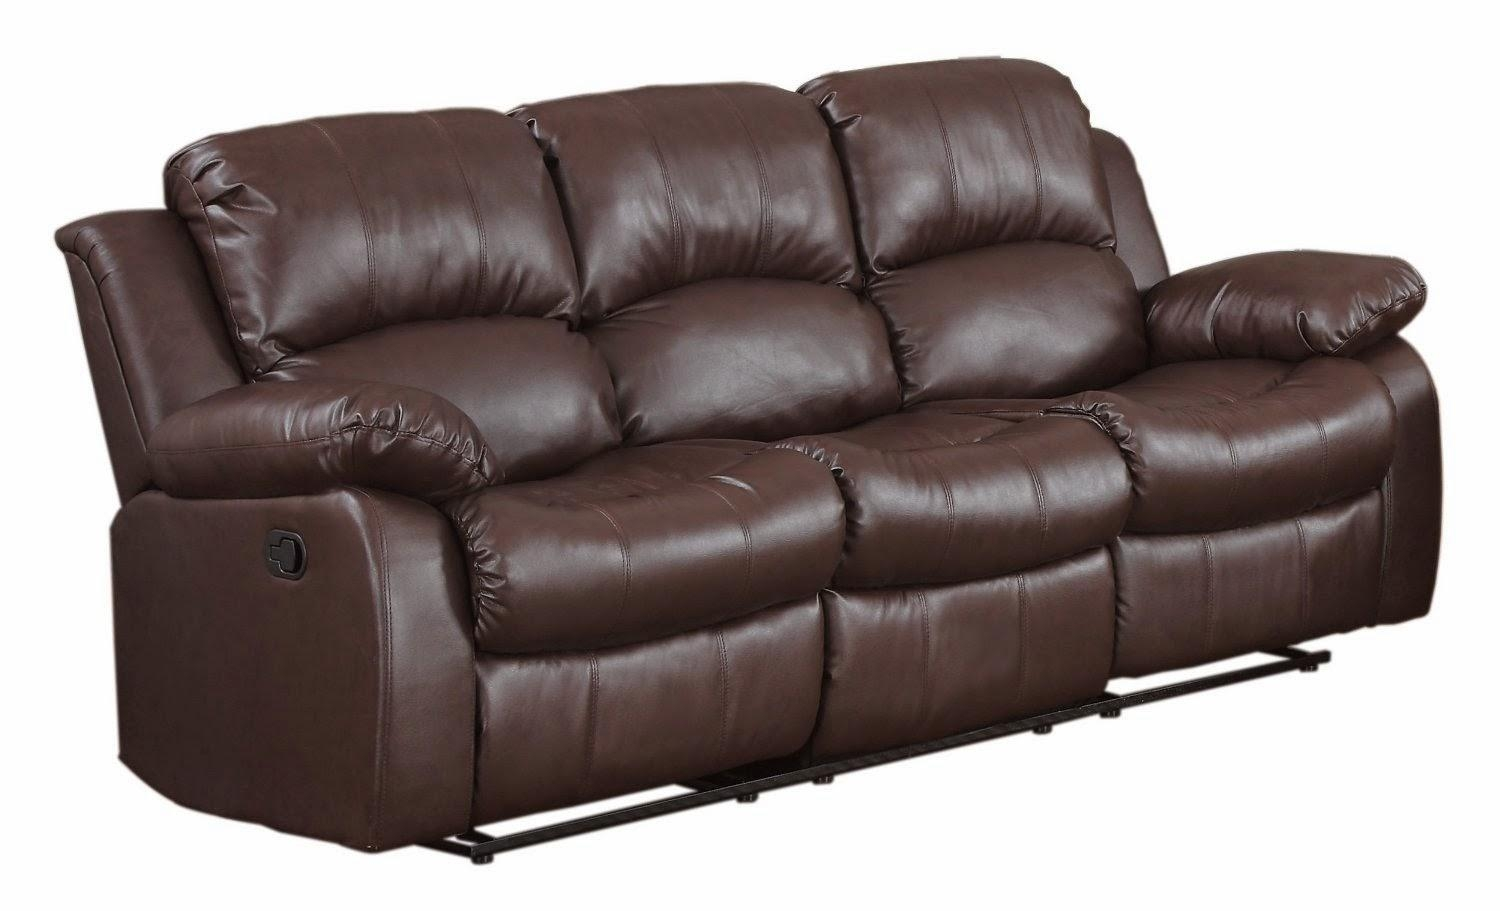 Sofas Center : Costco Leatherning Sofa Berkline Weekenderner Sets For Berkline Recliner Sofas (View 17 of 20)